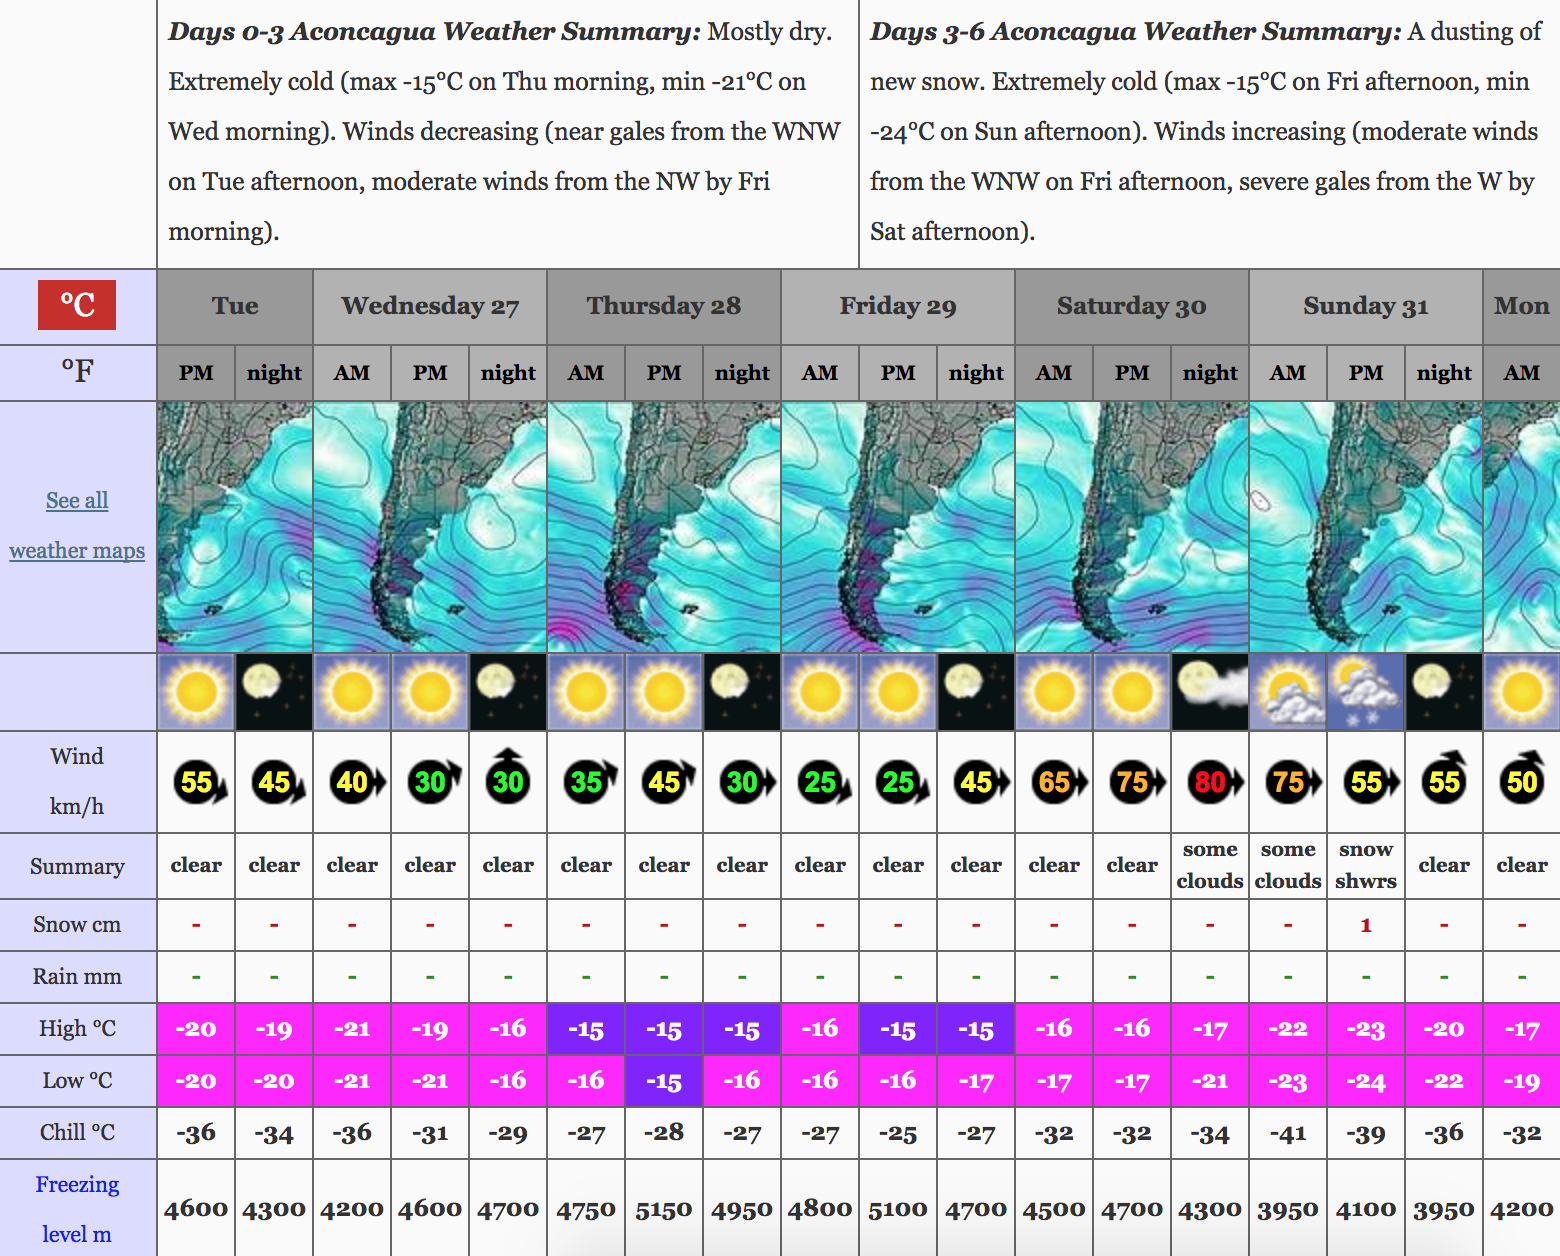 Yes, wind chill in the negative twenties is considered pretty prime on Aconcagua.